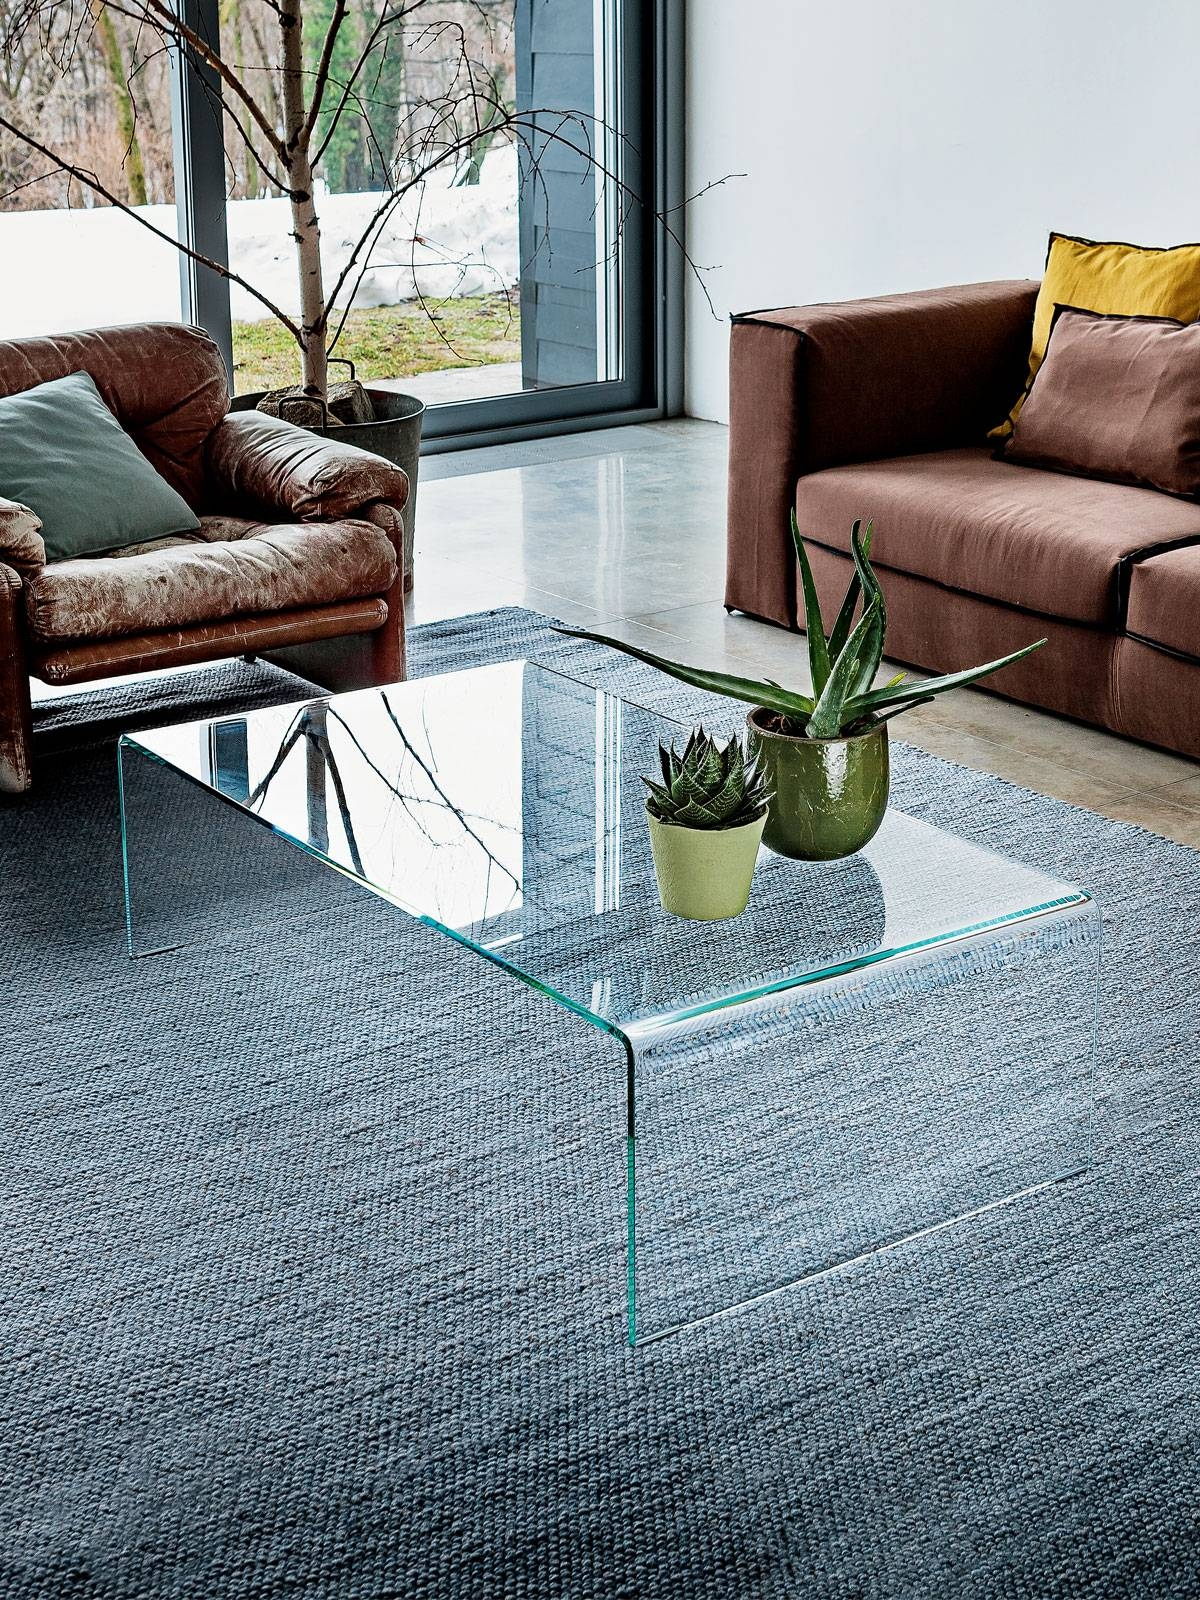 Bridge Curved Glass Coffee Table - To Buy Online - Glassdomain with regard to Curved Glass Coffee Tables (Image 5 of 30)